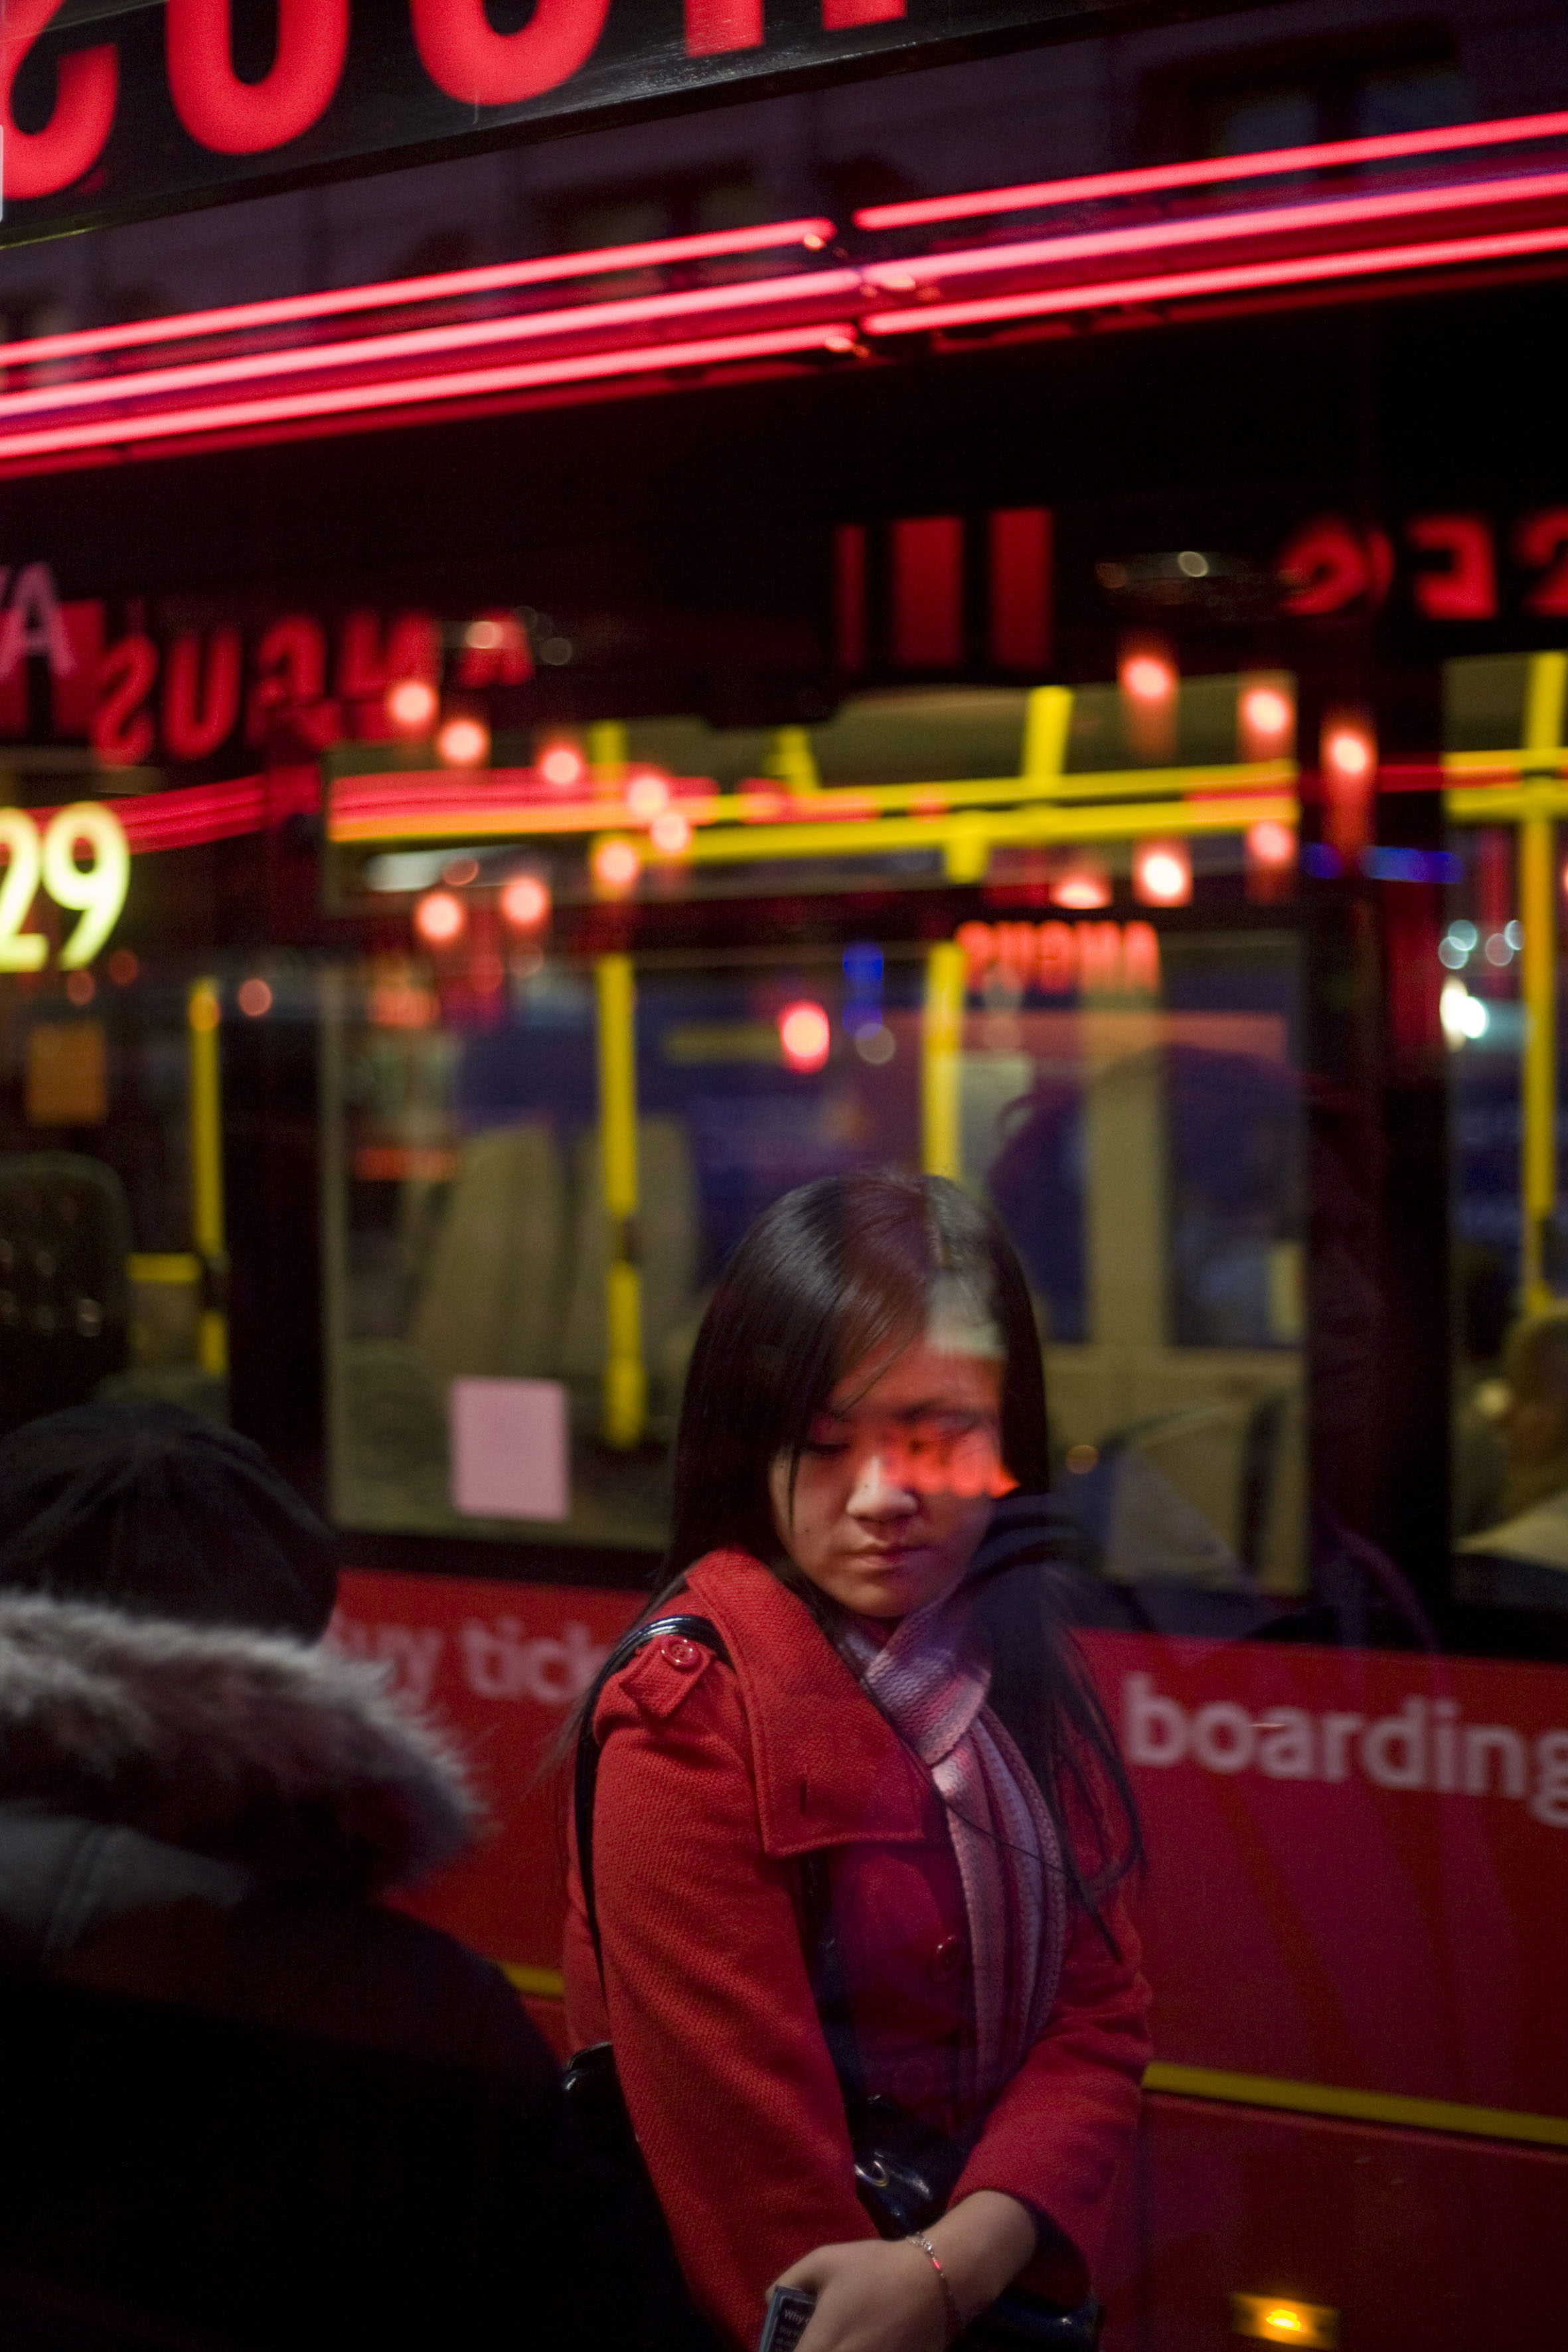 A young commuter woman awaits her bus on a southbound route at a stop on Charing Cross Road in central London. Surrounded by red hues from the bus behind the girl and from lettering from an Angus Steakhouse restaurant,